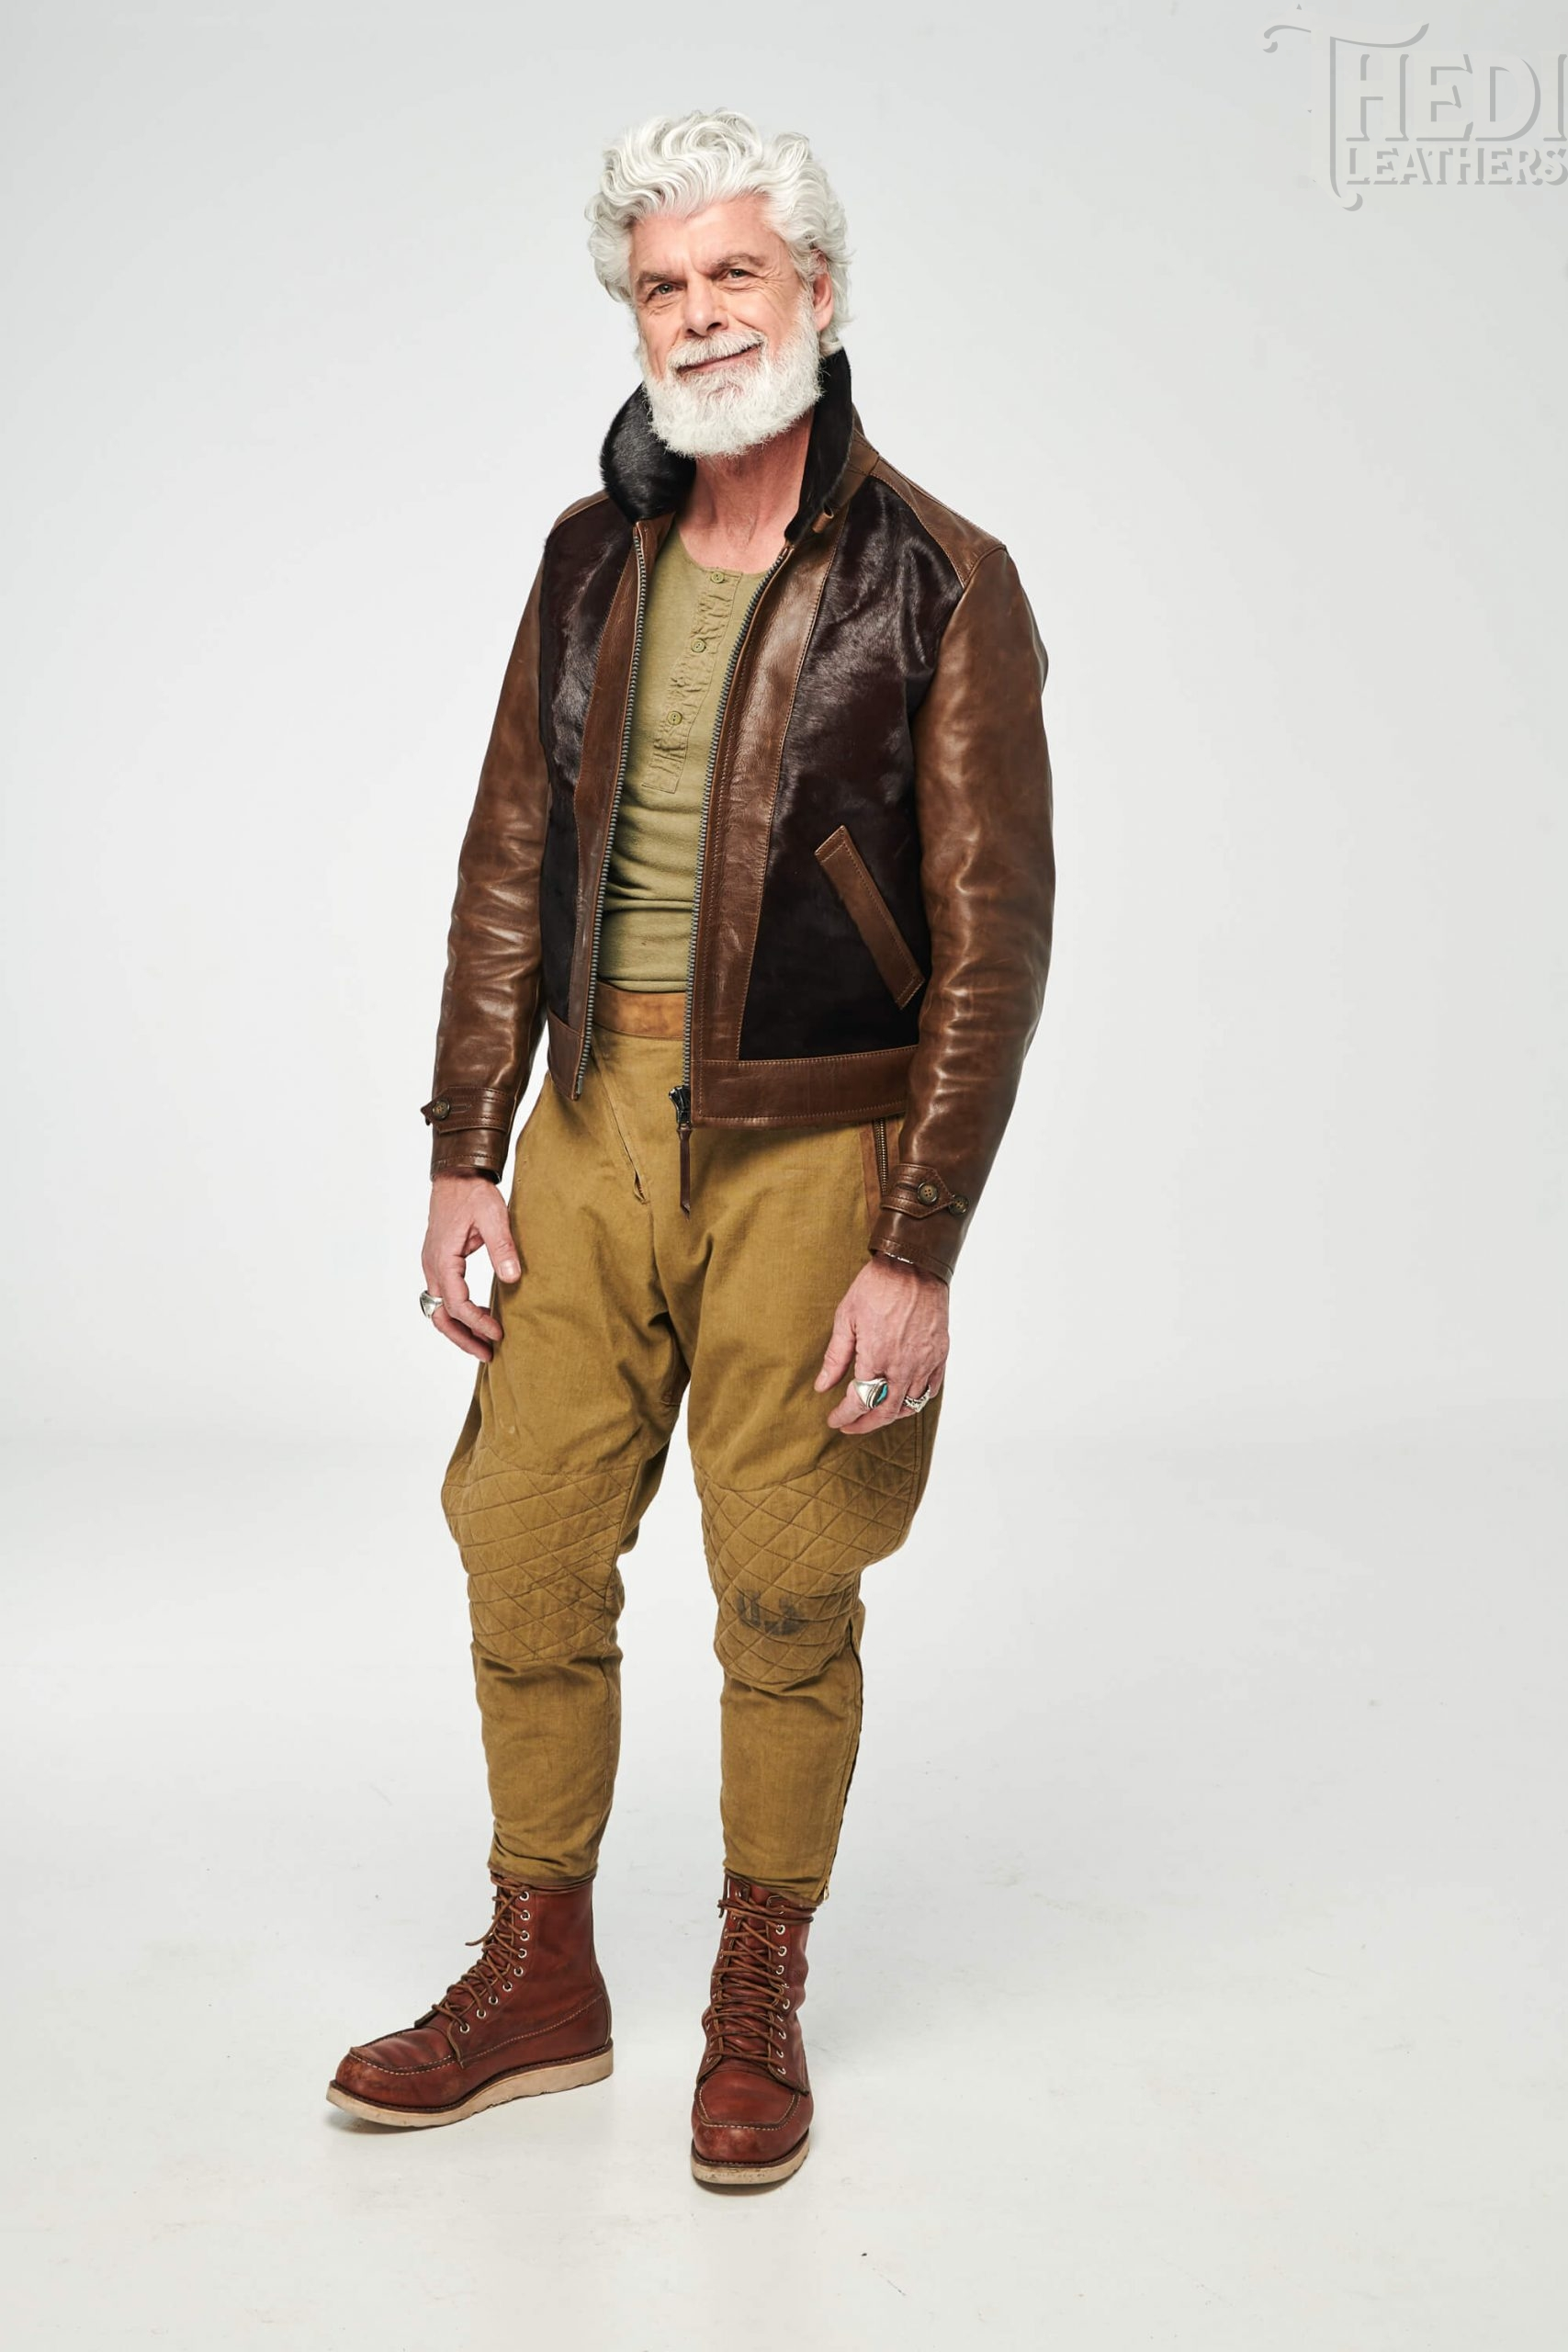 https://thedi-leathers.com/wp-content/uploads/2019/10/MTCP-127985-LONG-scaled.jpg